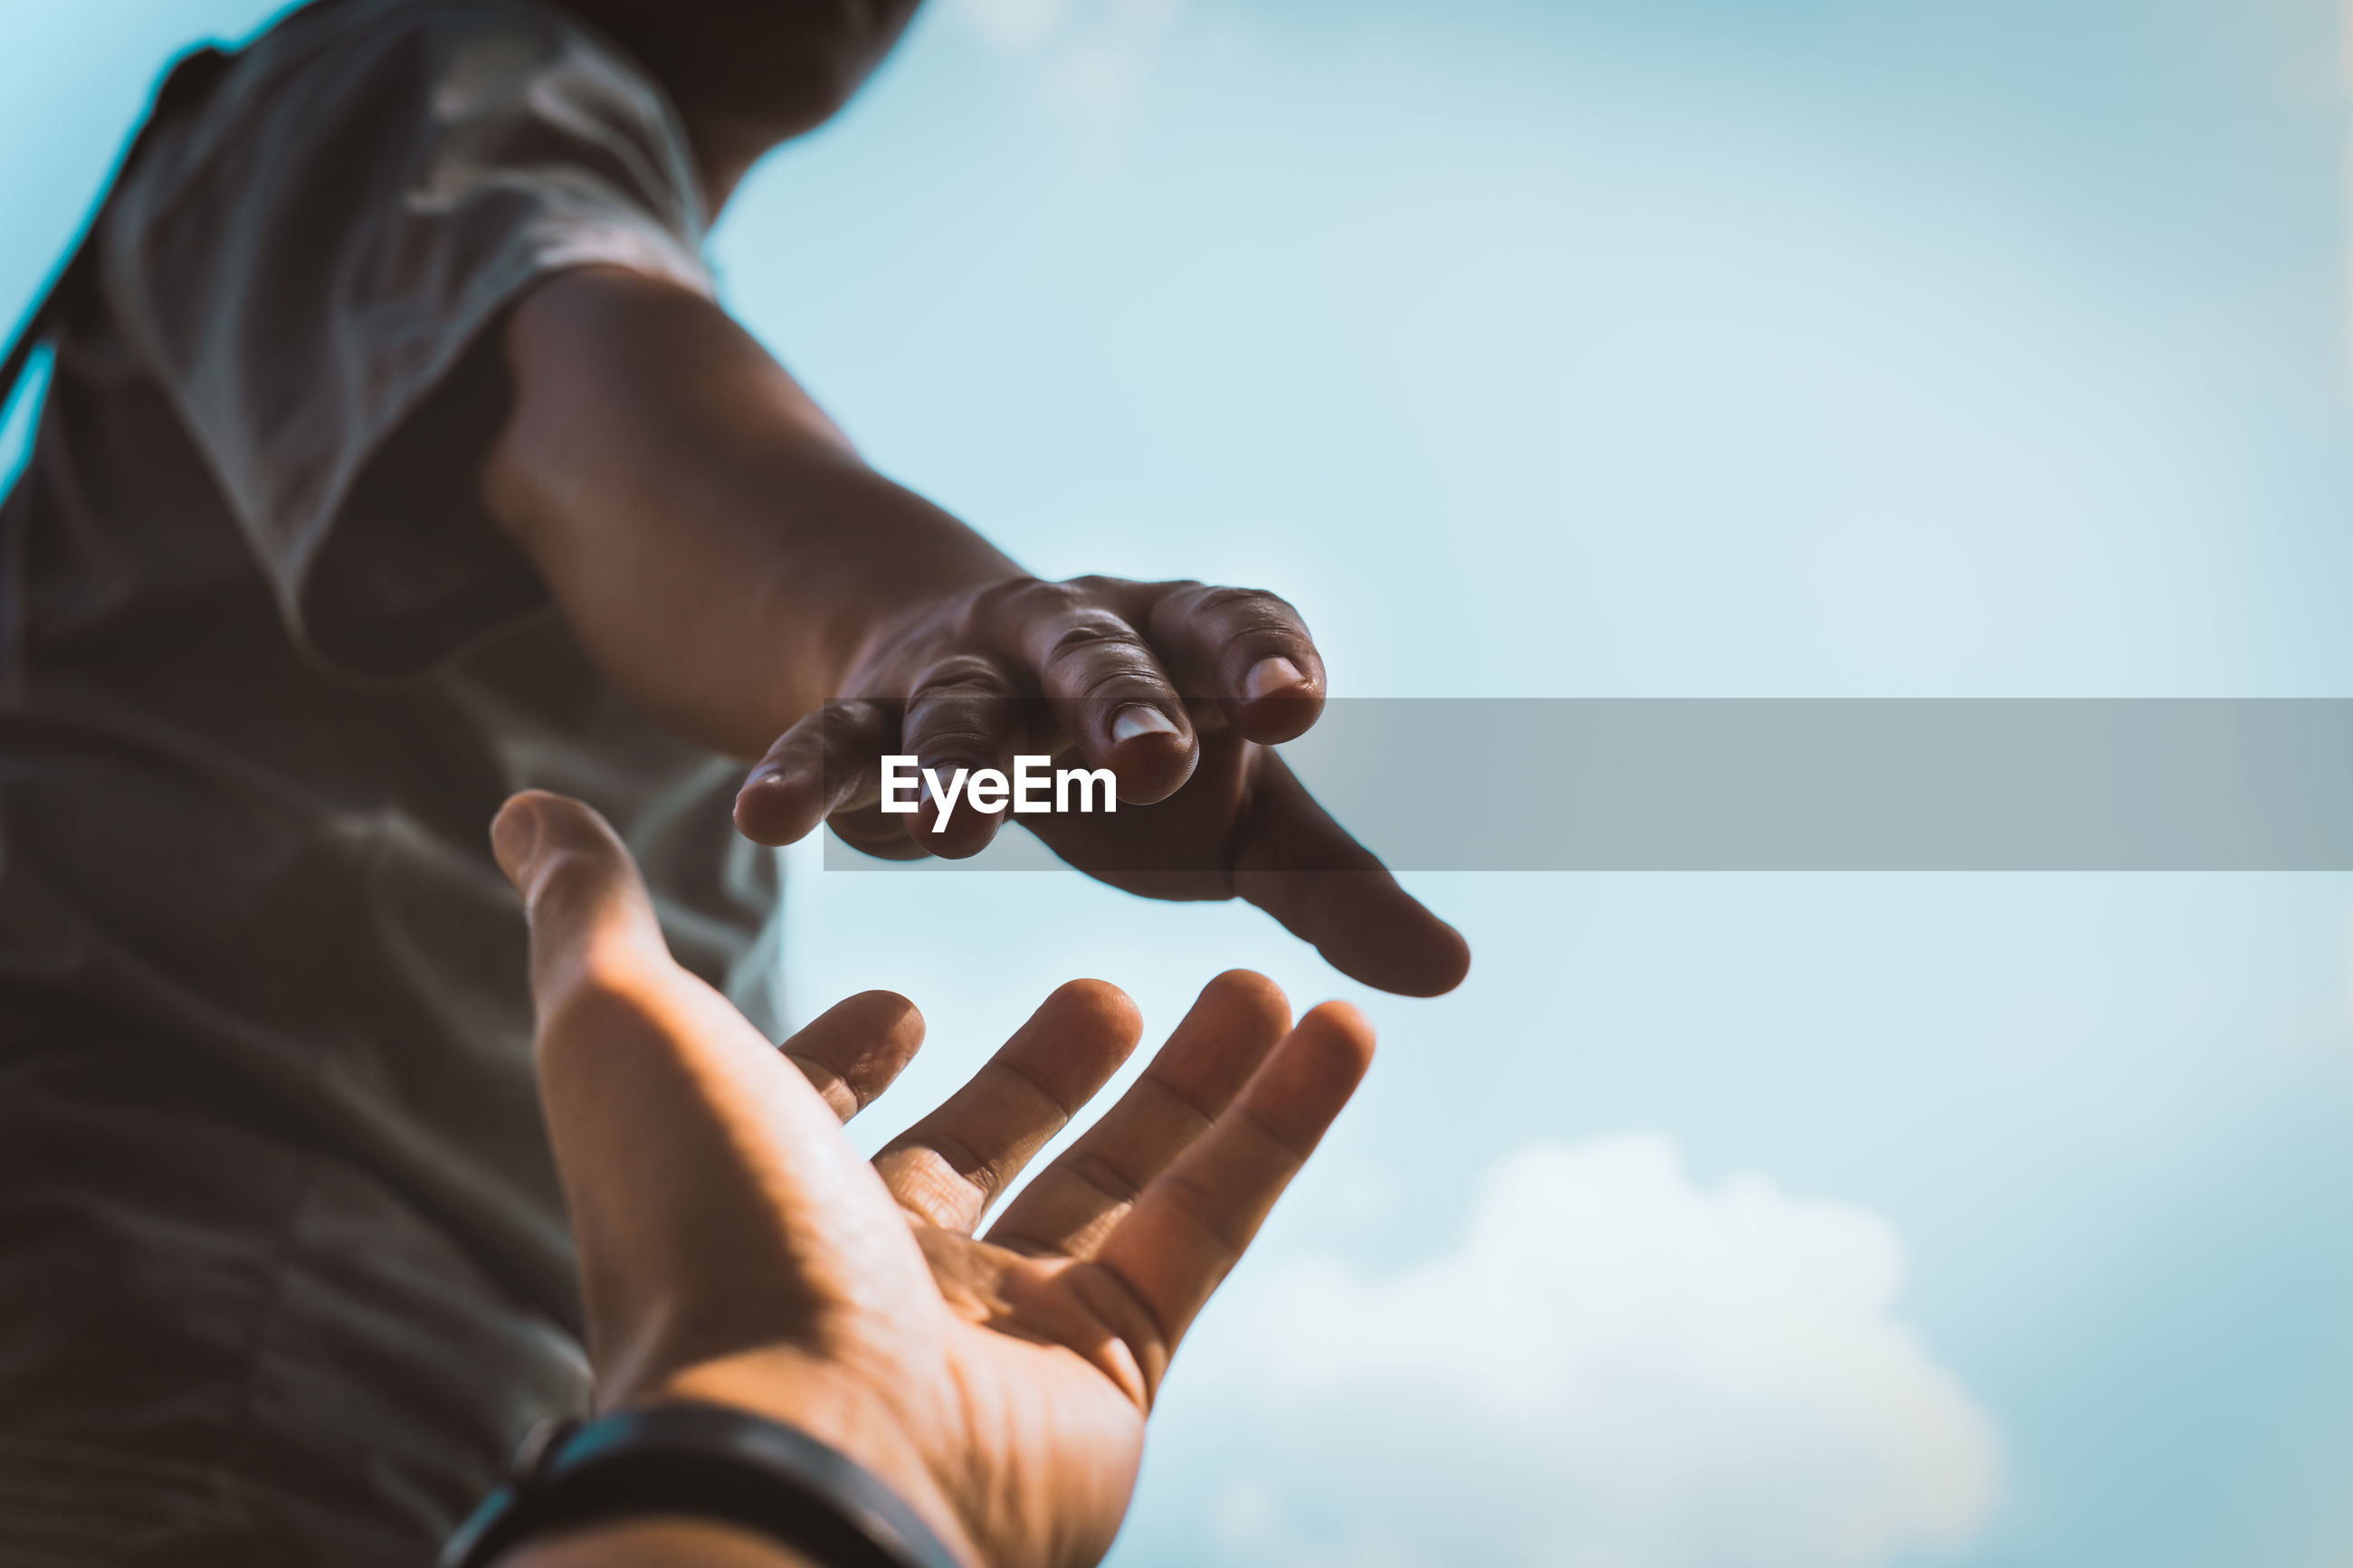 Cropped image of man reaching towards girlfriend hand against sky